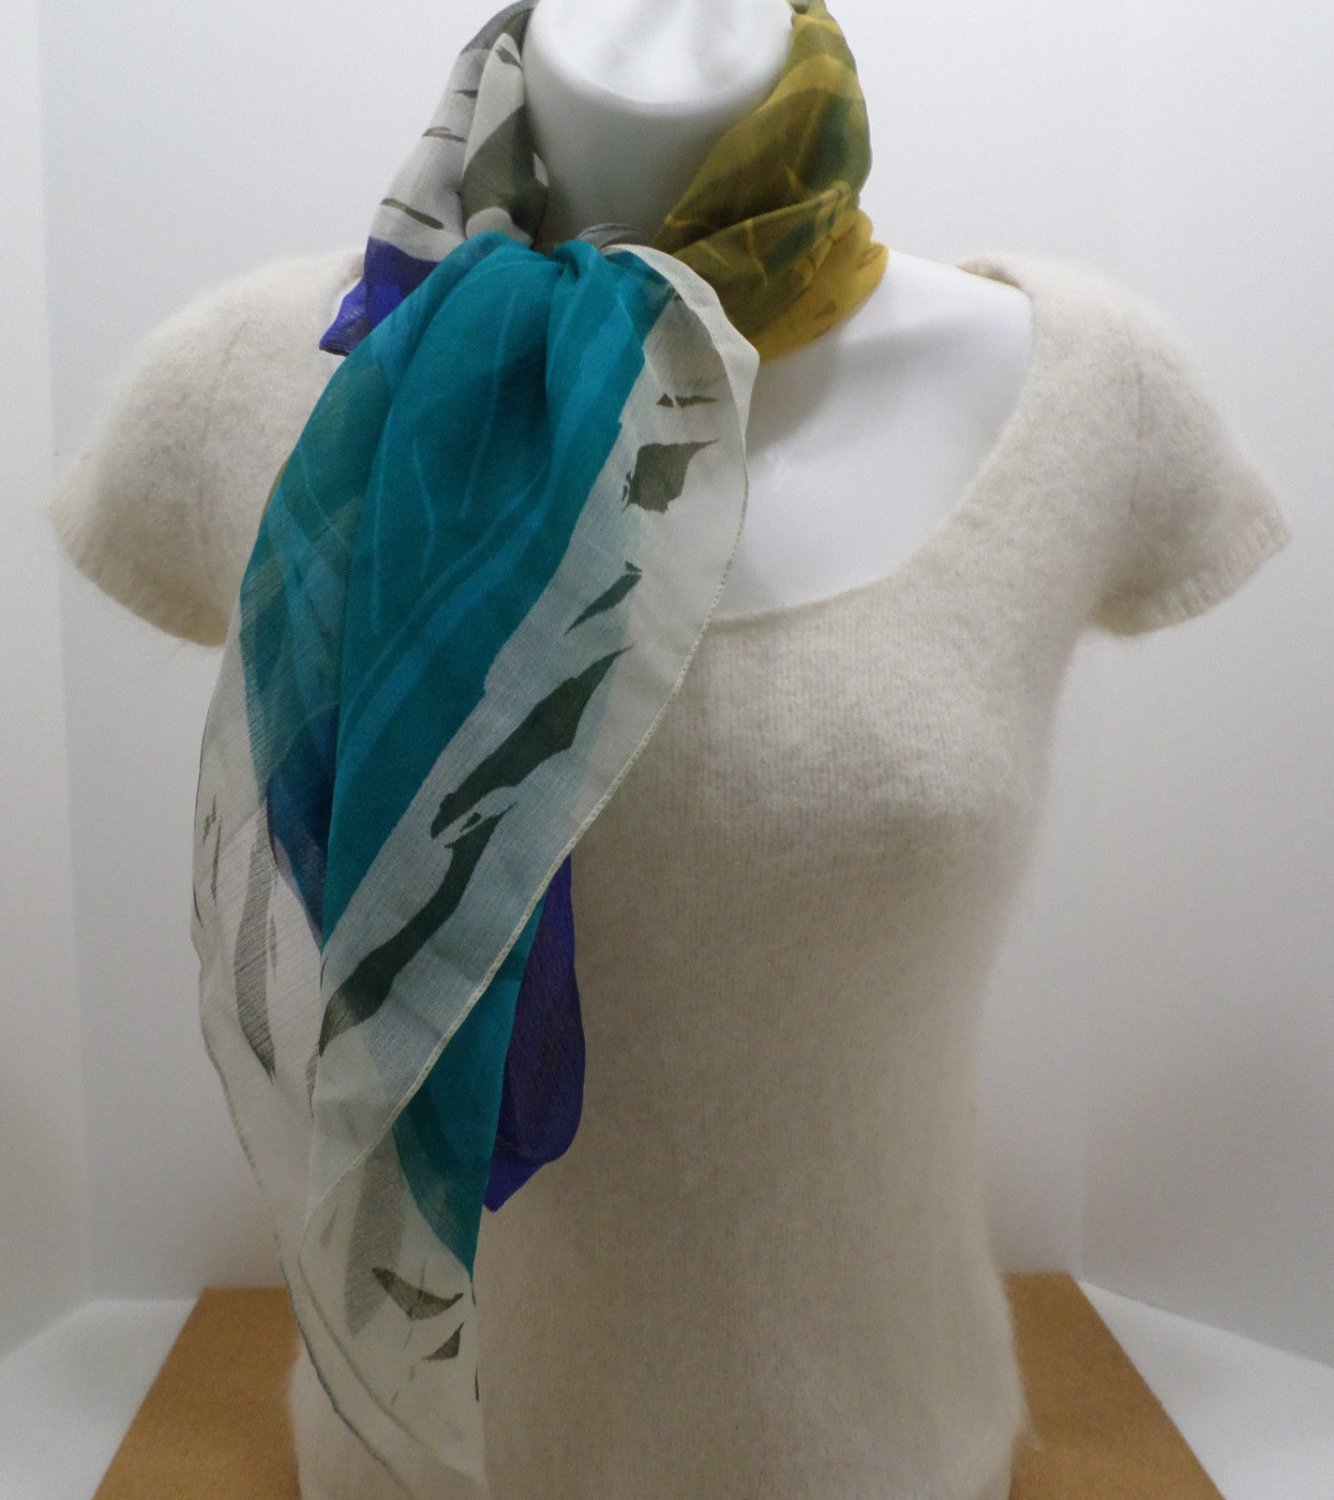 Vintage Scarf Made in Italy 100% Polyester Blue Tan Black Turquoise 35 x 35